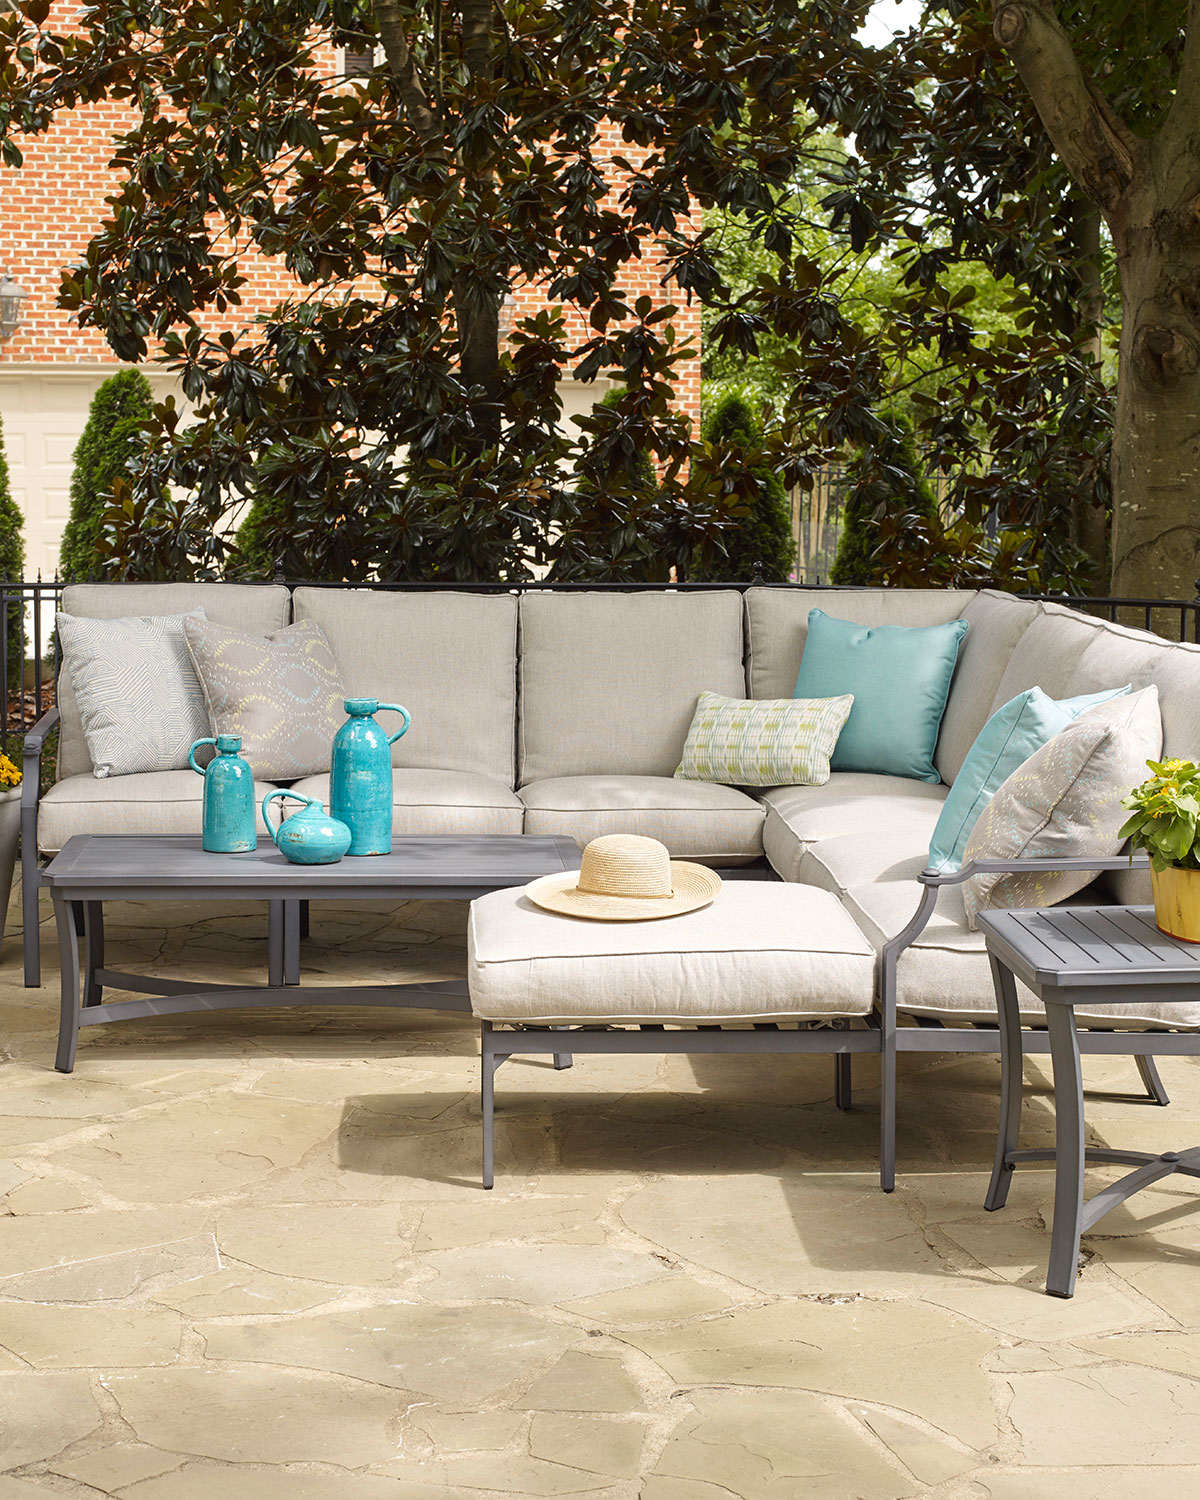 Raleigh Outdoor Side Table - Lane Venture Raleigh Outdoor Side Table Neiman Marcus